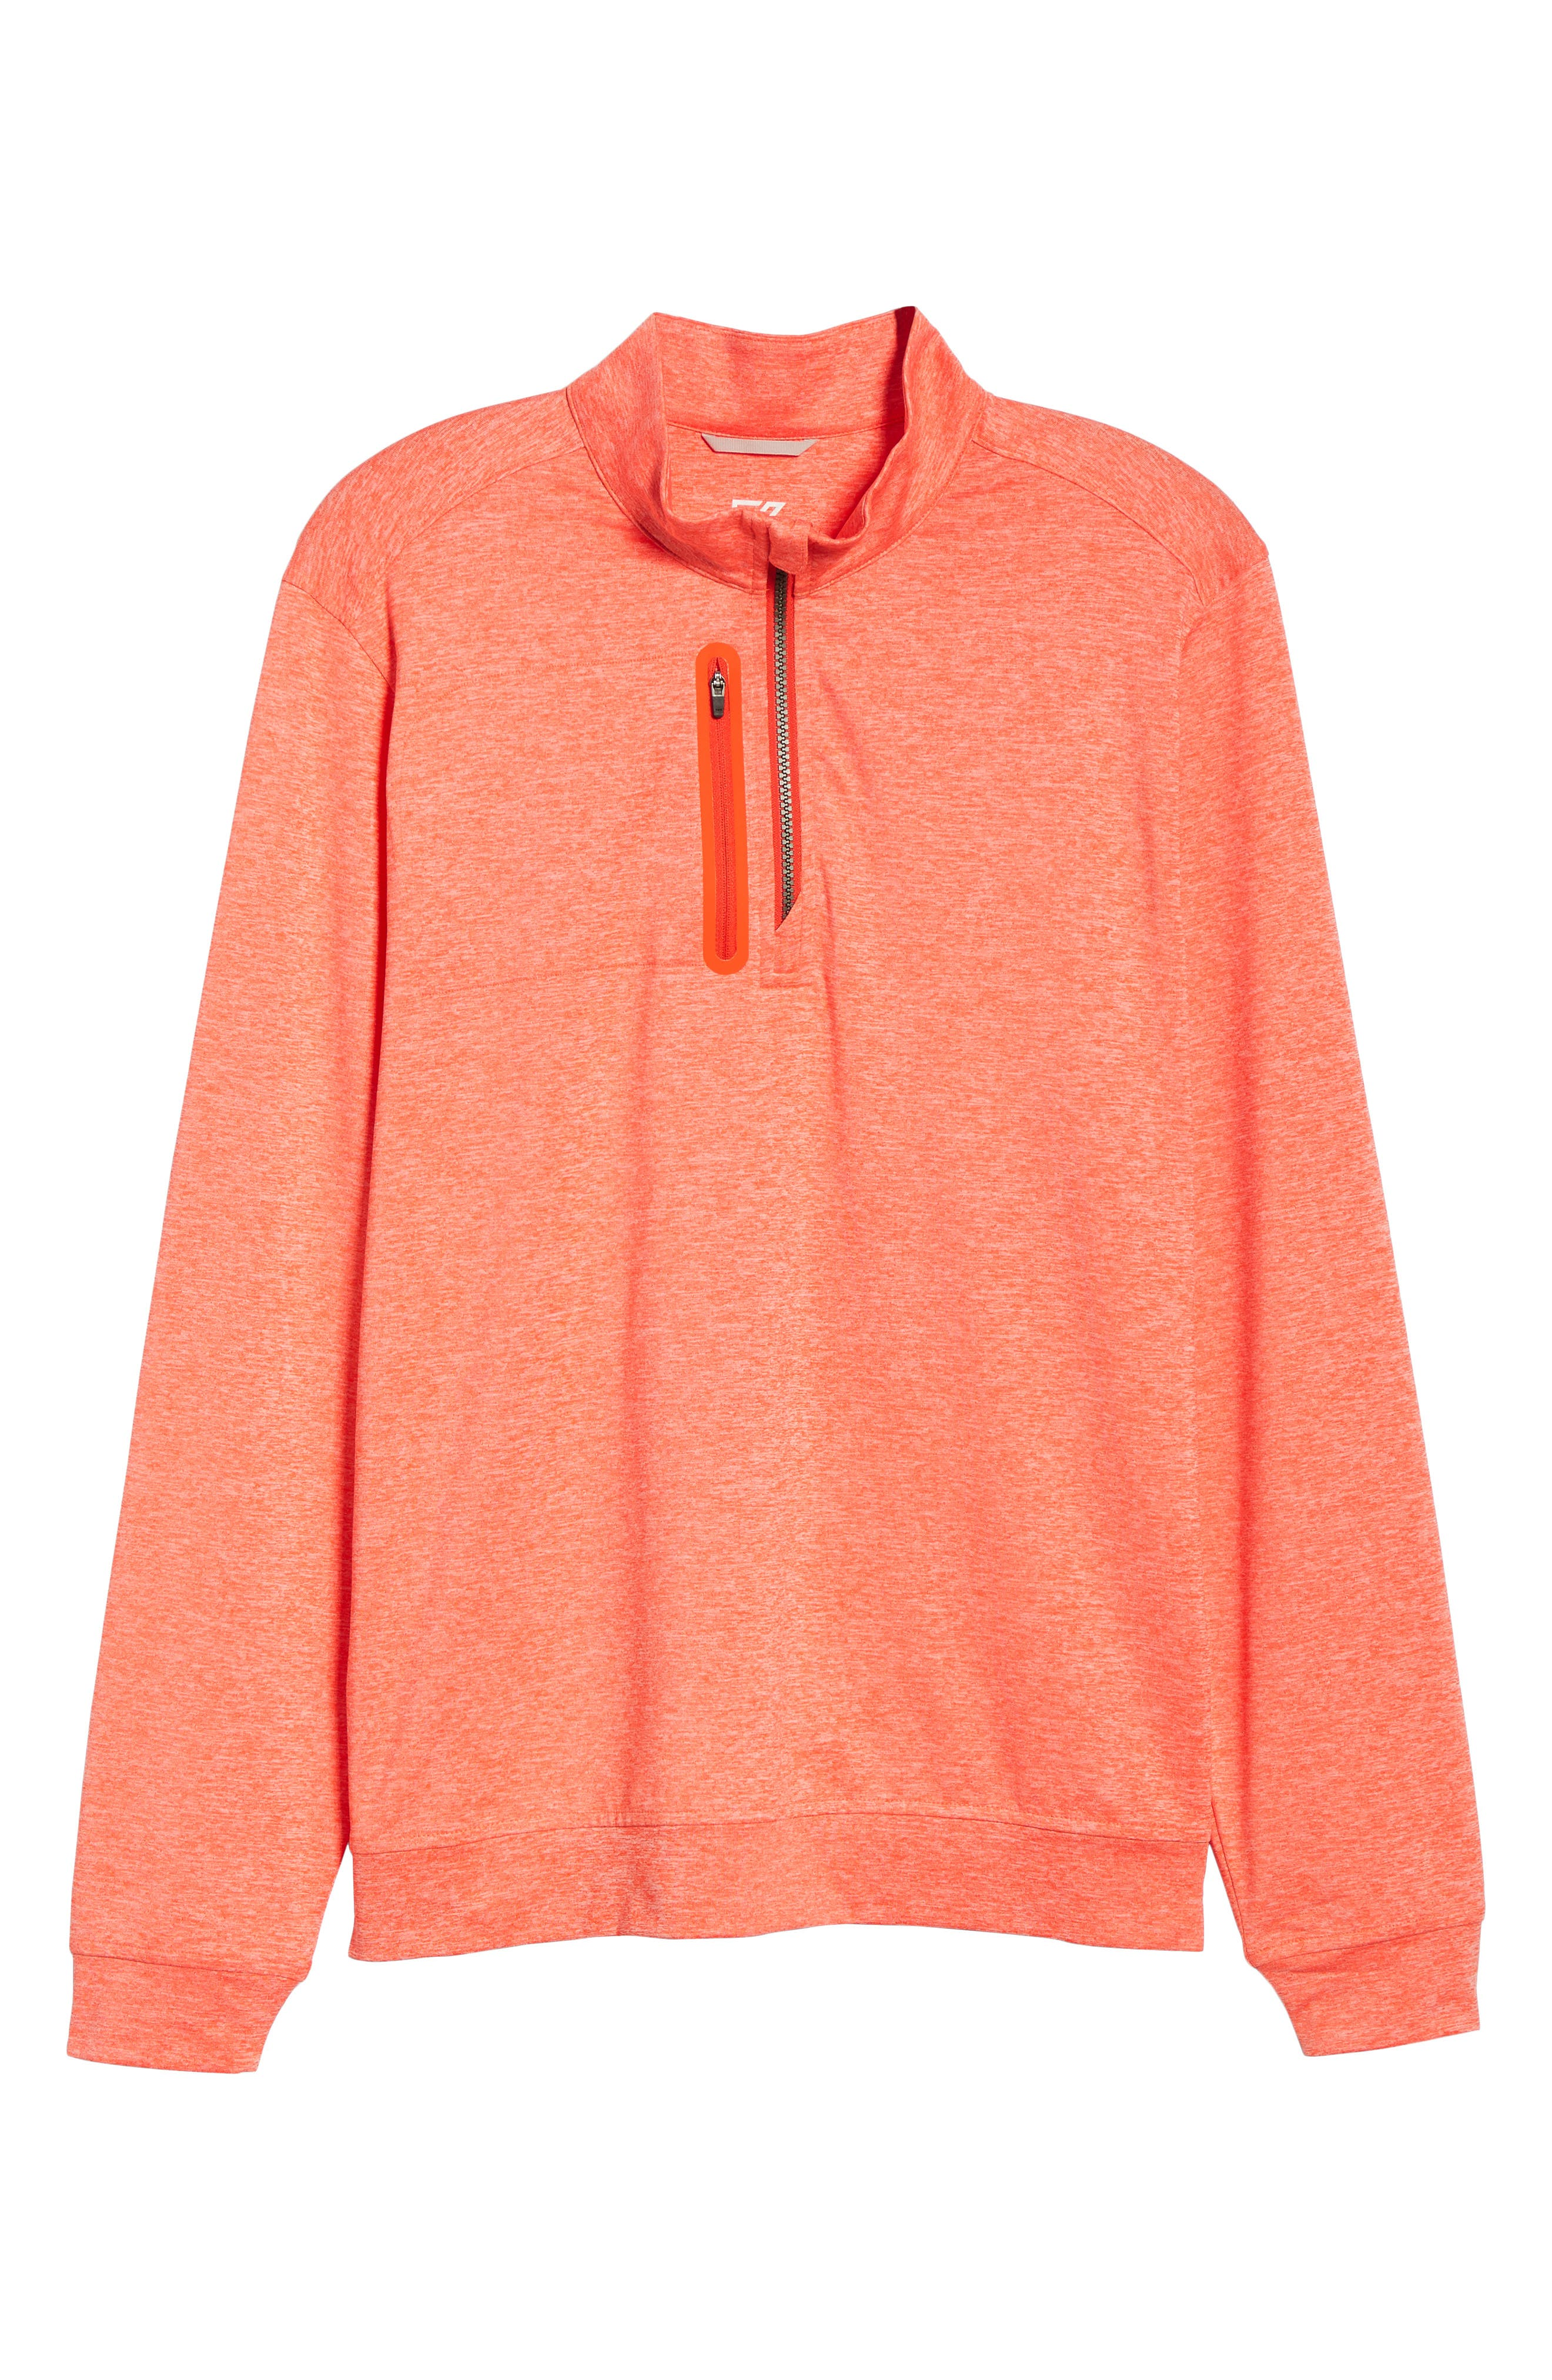 Stealth Half Zip Pullover,                             Alternate thumbnail 6, color,                             ALARM